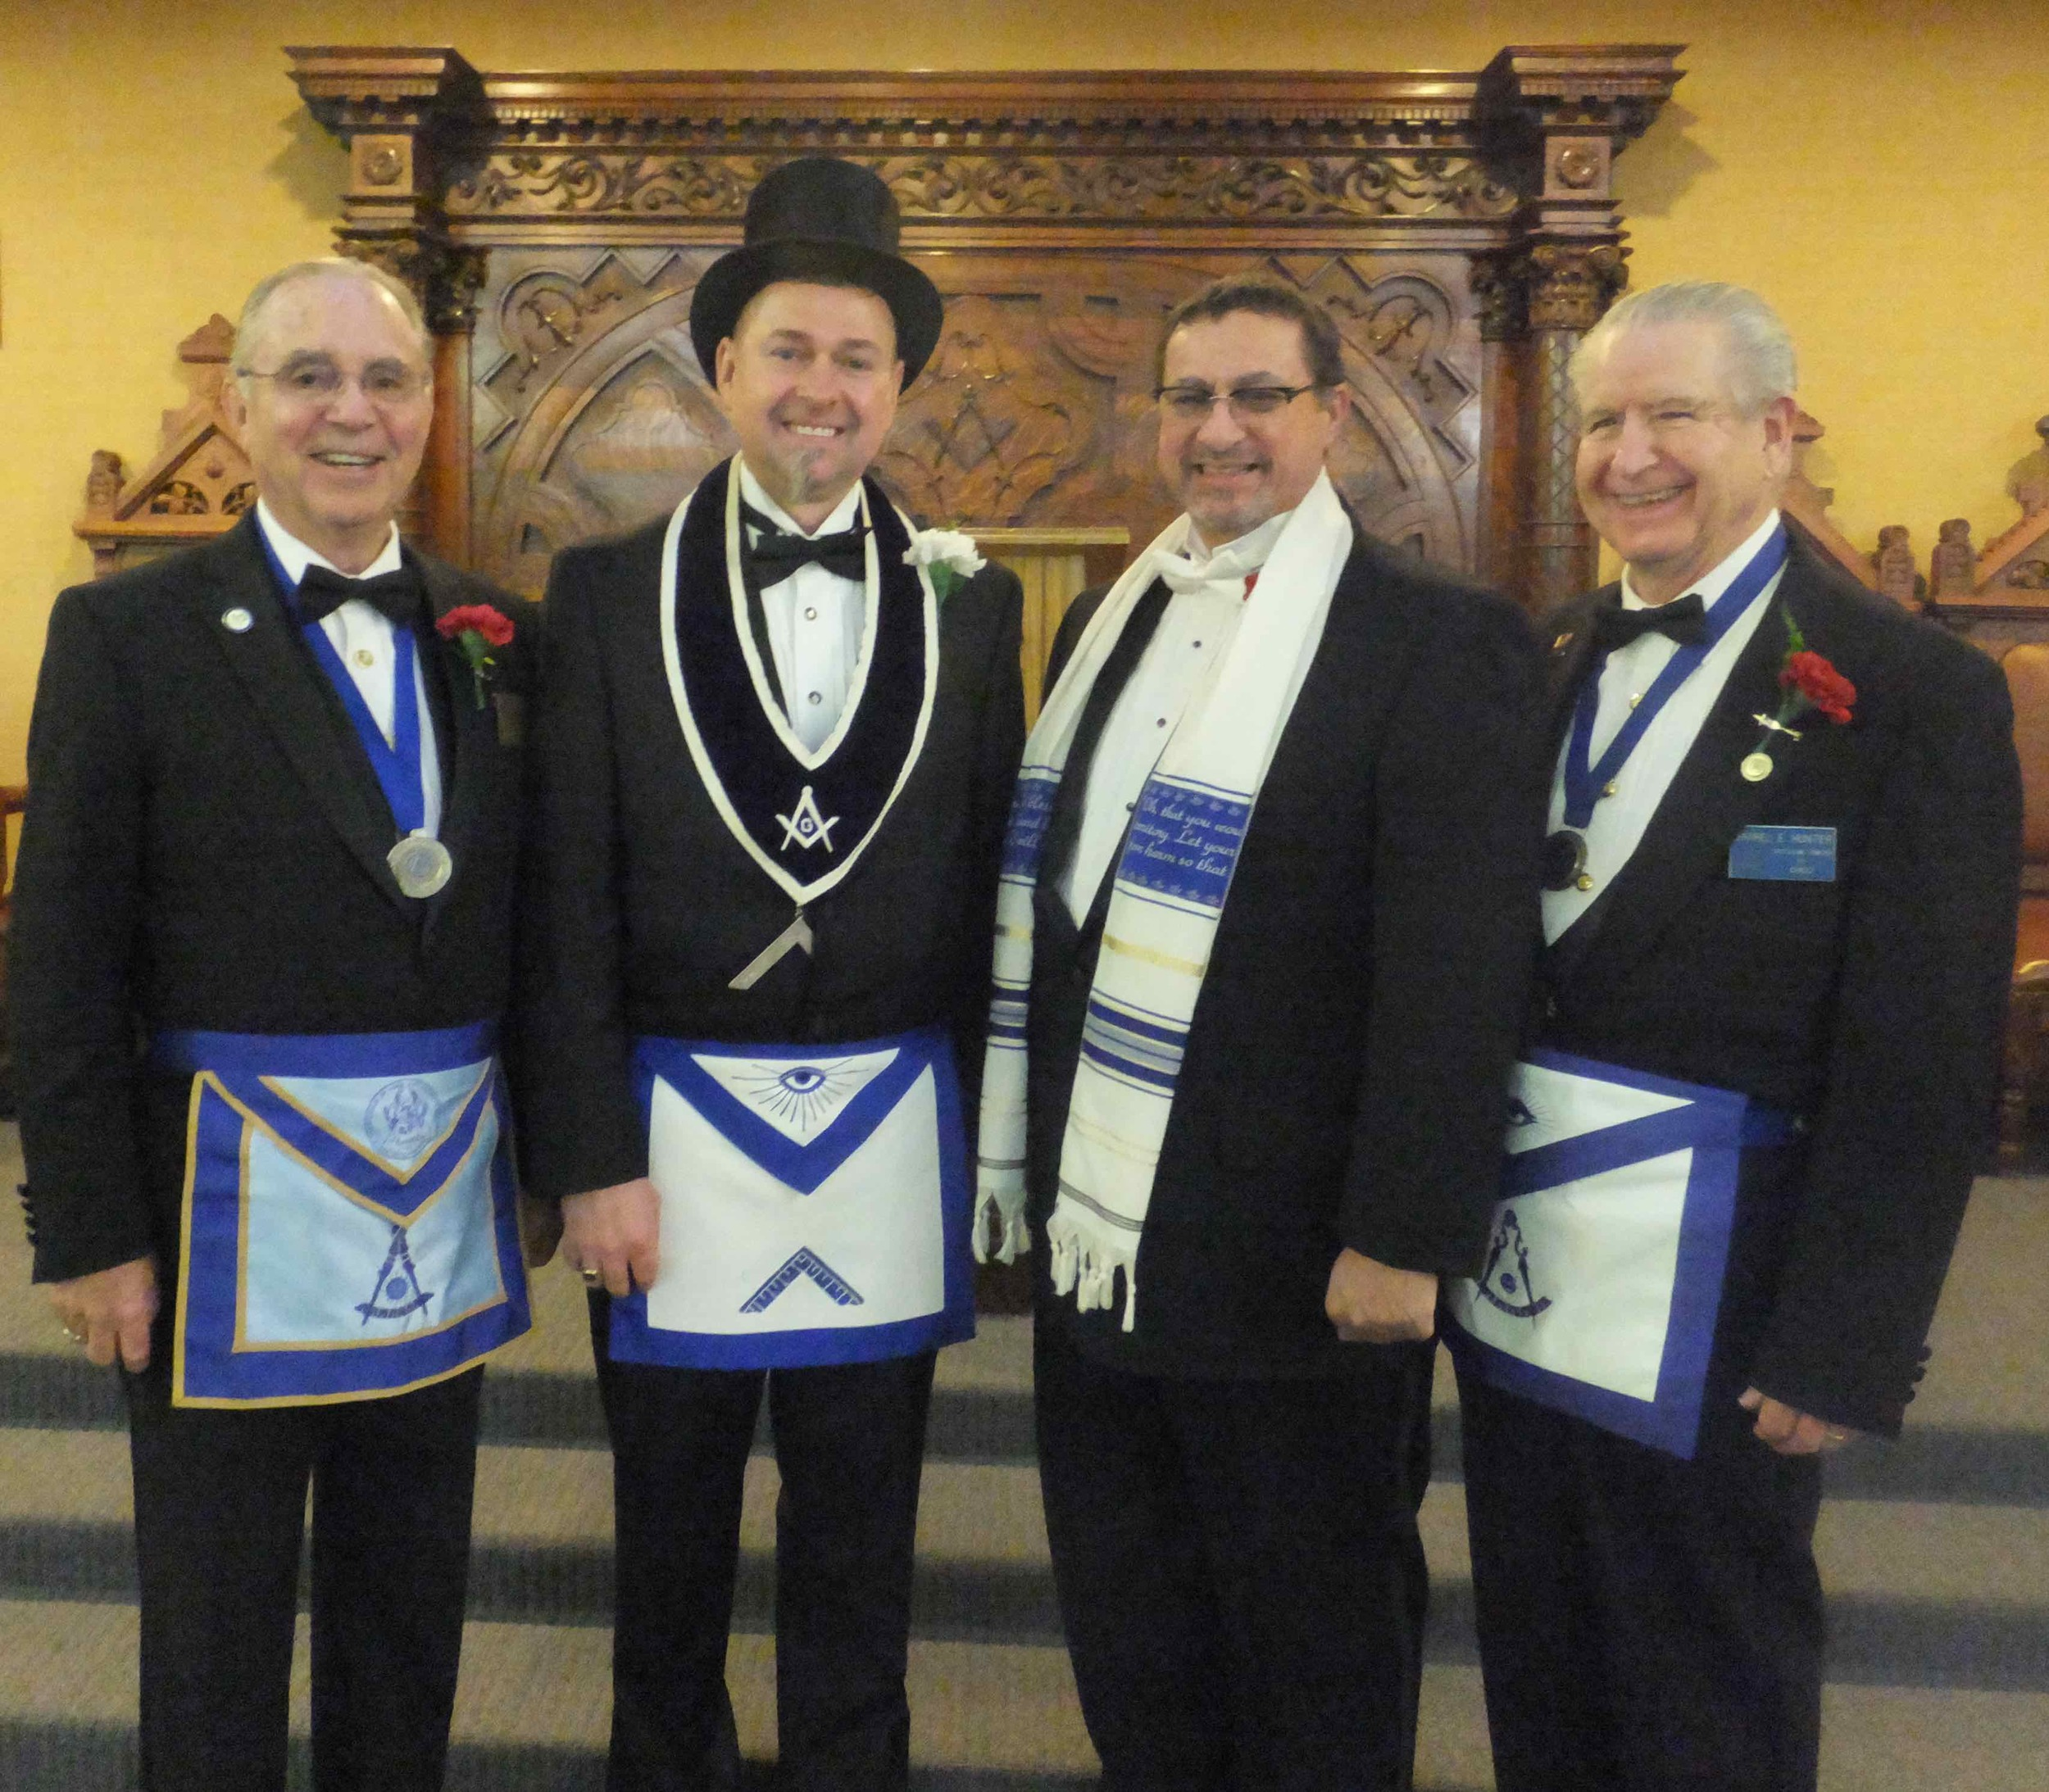 Past Masters of Chico and Oroville lodges with 2016 Worshipful Master Matthew Cherrington. 2014 & 2015 past Master Steve Catterall was not able to attend.